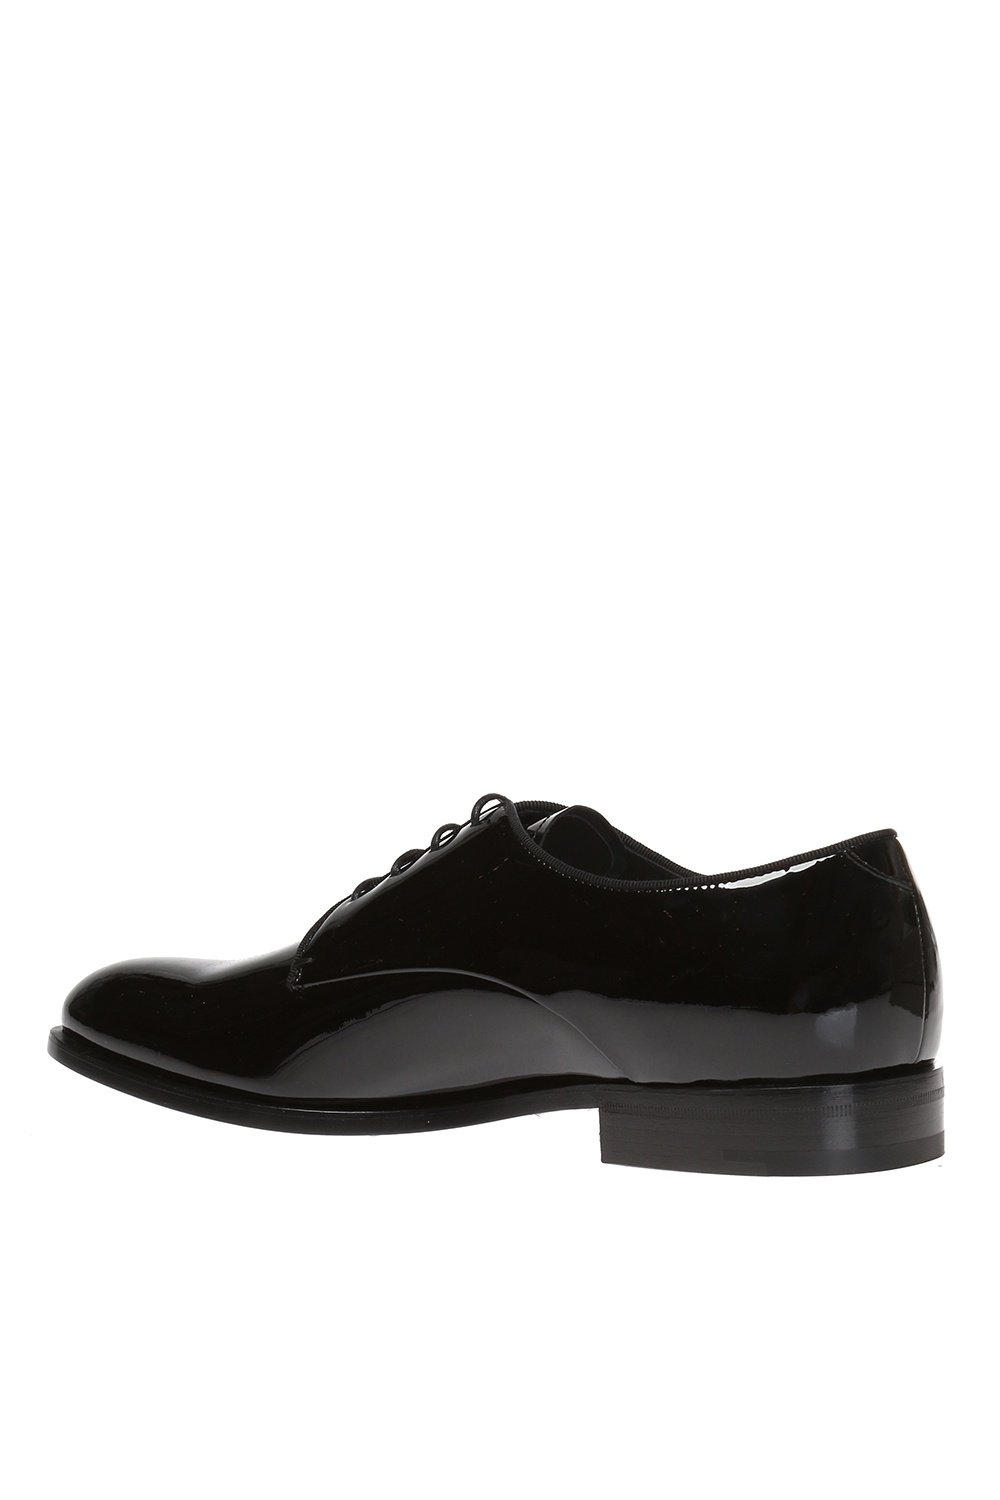 Giorgio Armani Patent leather shoes